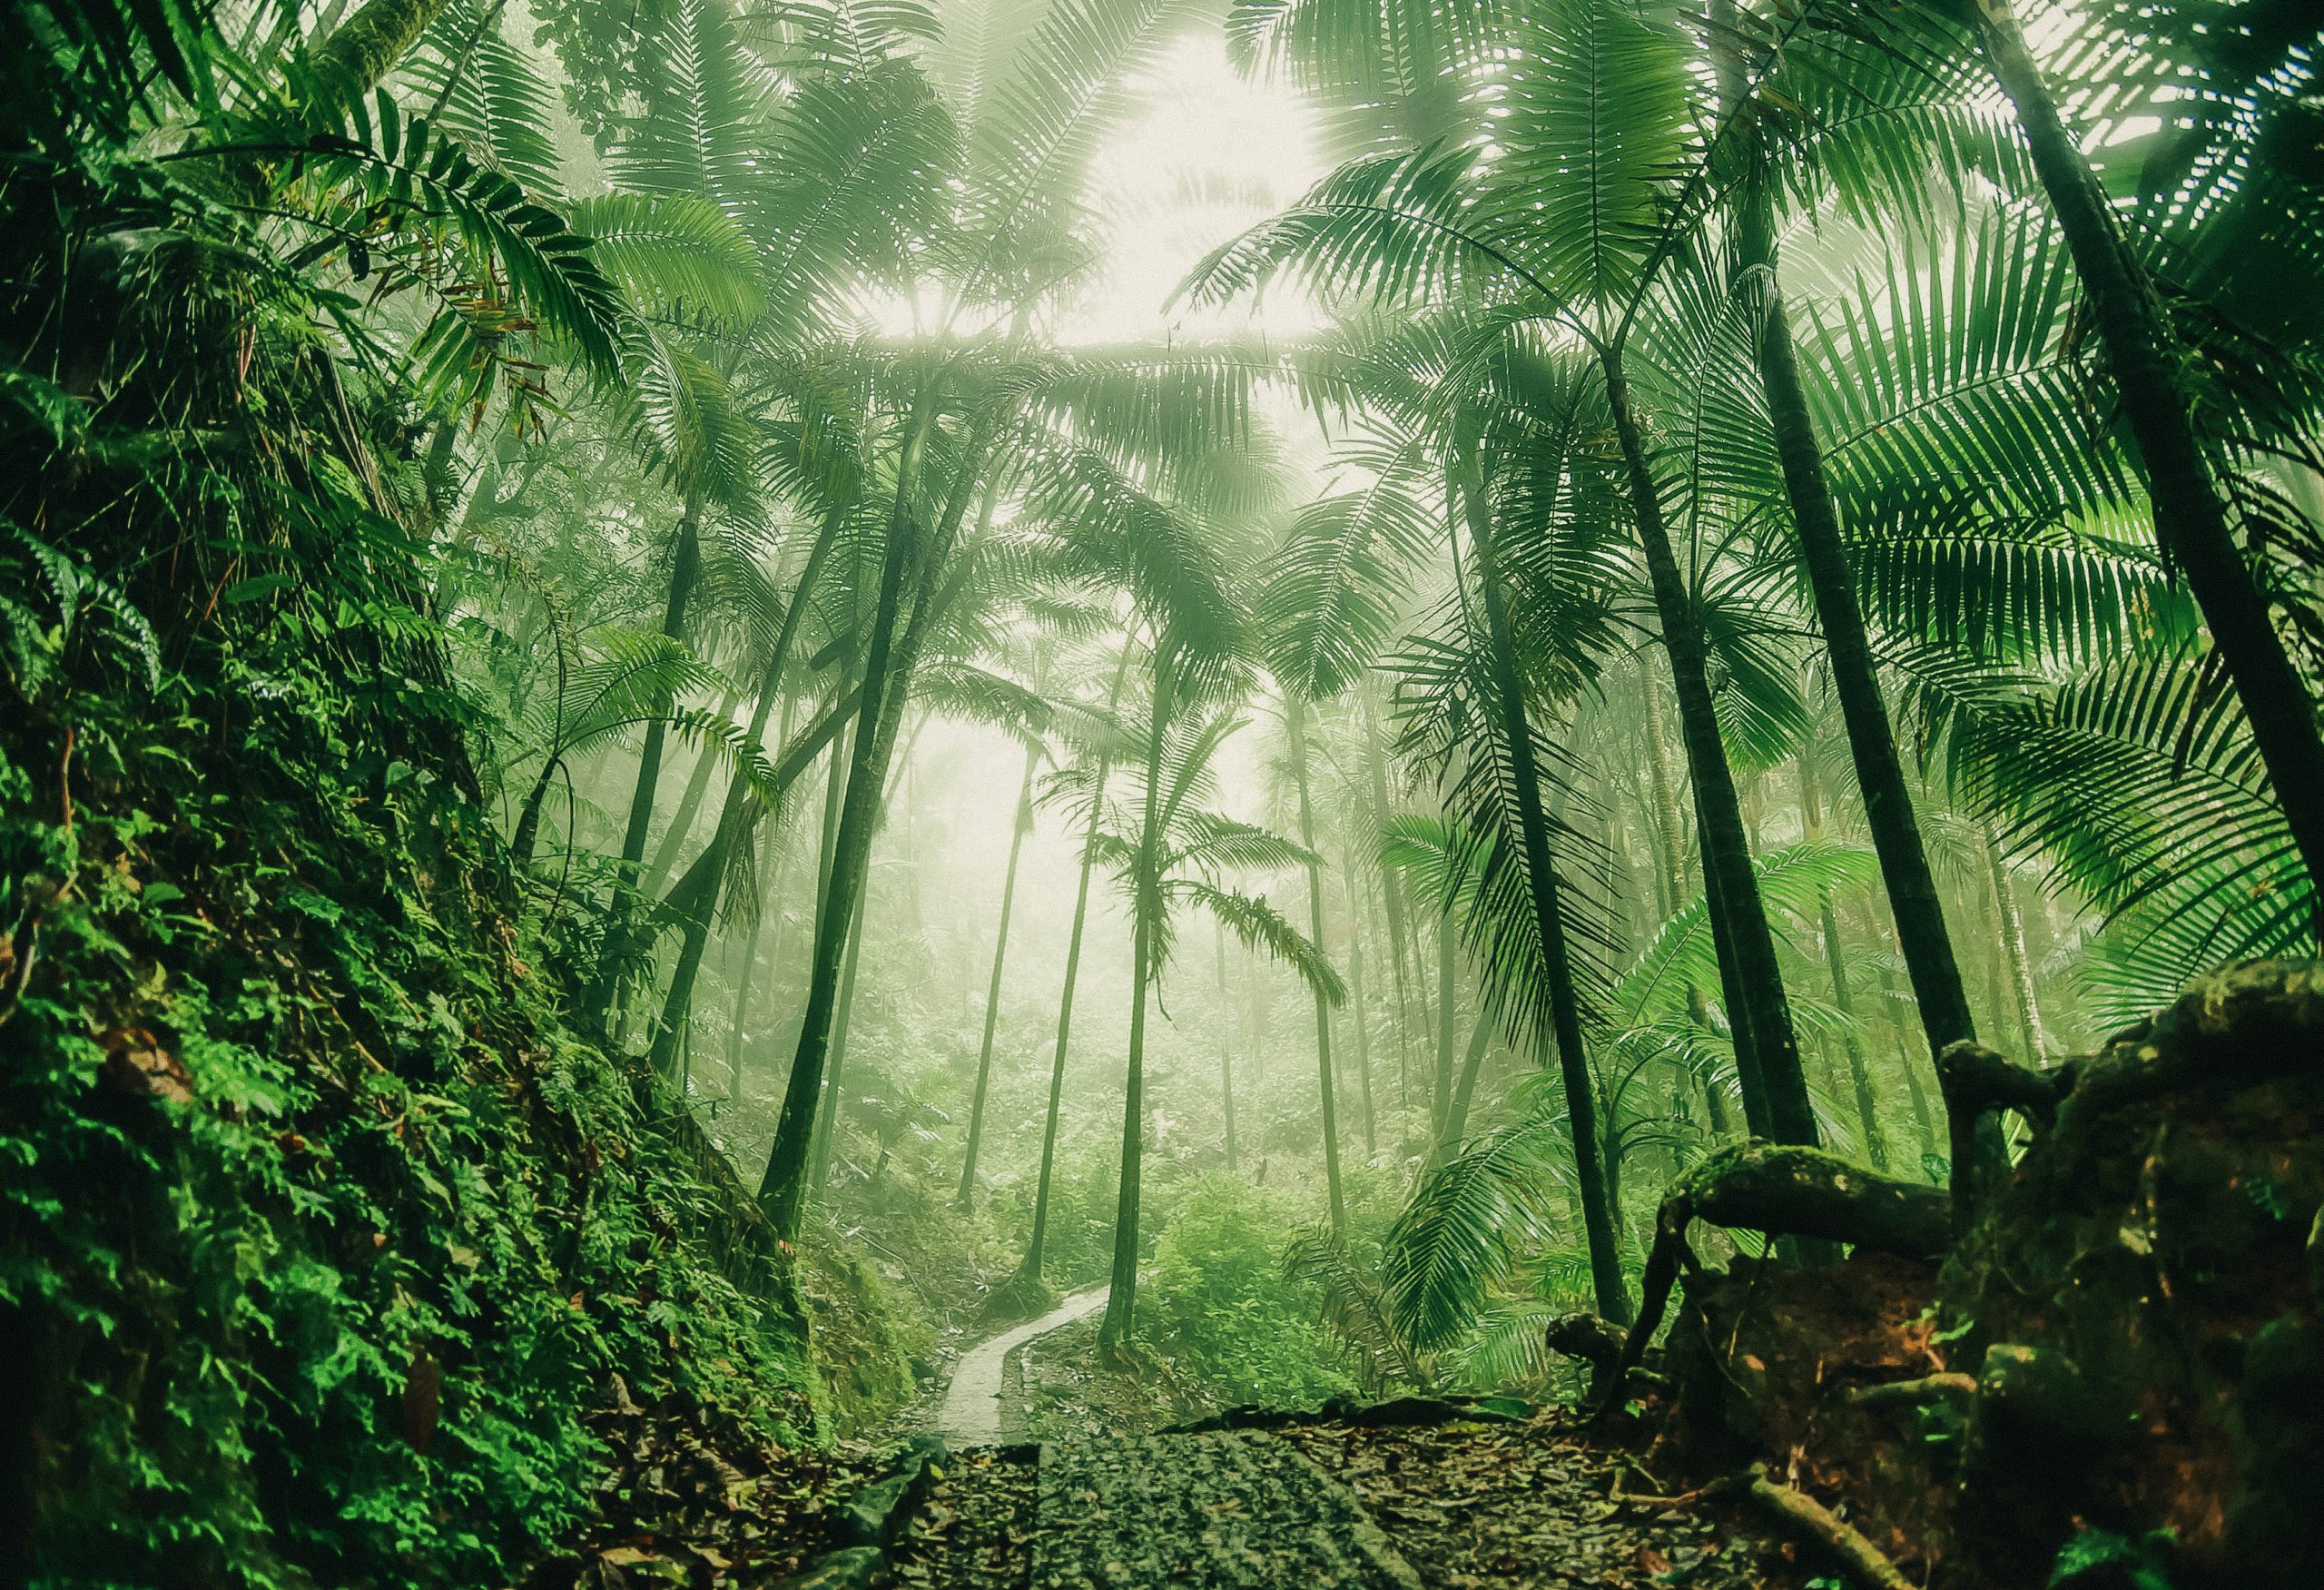 Tropical path in the fog at El Yunque National Rain Forest in Puerto Rico